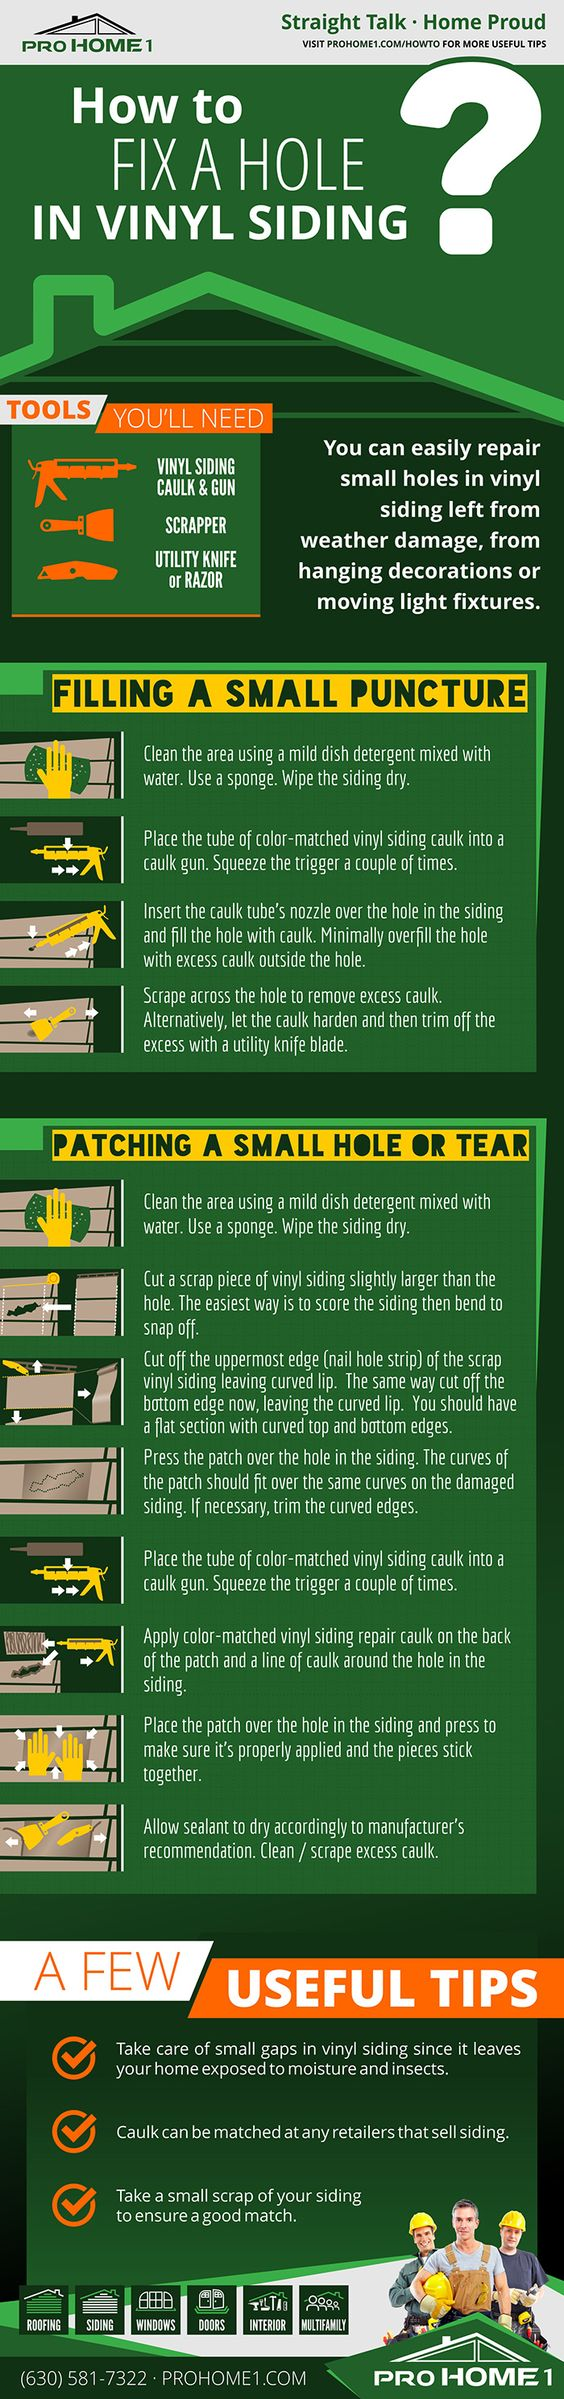 You can easily repair small holes in vinyl siding left from weather damage, from hanging decorations or moving light fixtures. Here's how to: http://www.prohome1.com/en/about-us/guides/how-to-fix-patch-vinyl-siding.html #howto #tips #vynilsiding #vynilsidingrepairs